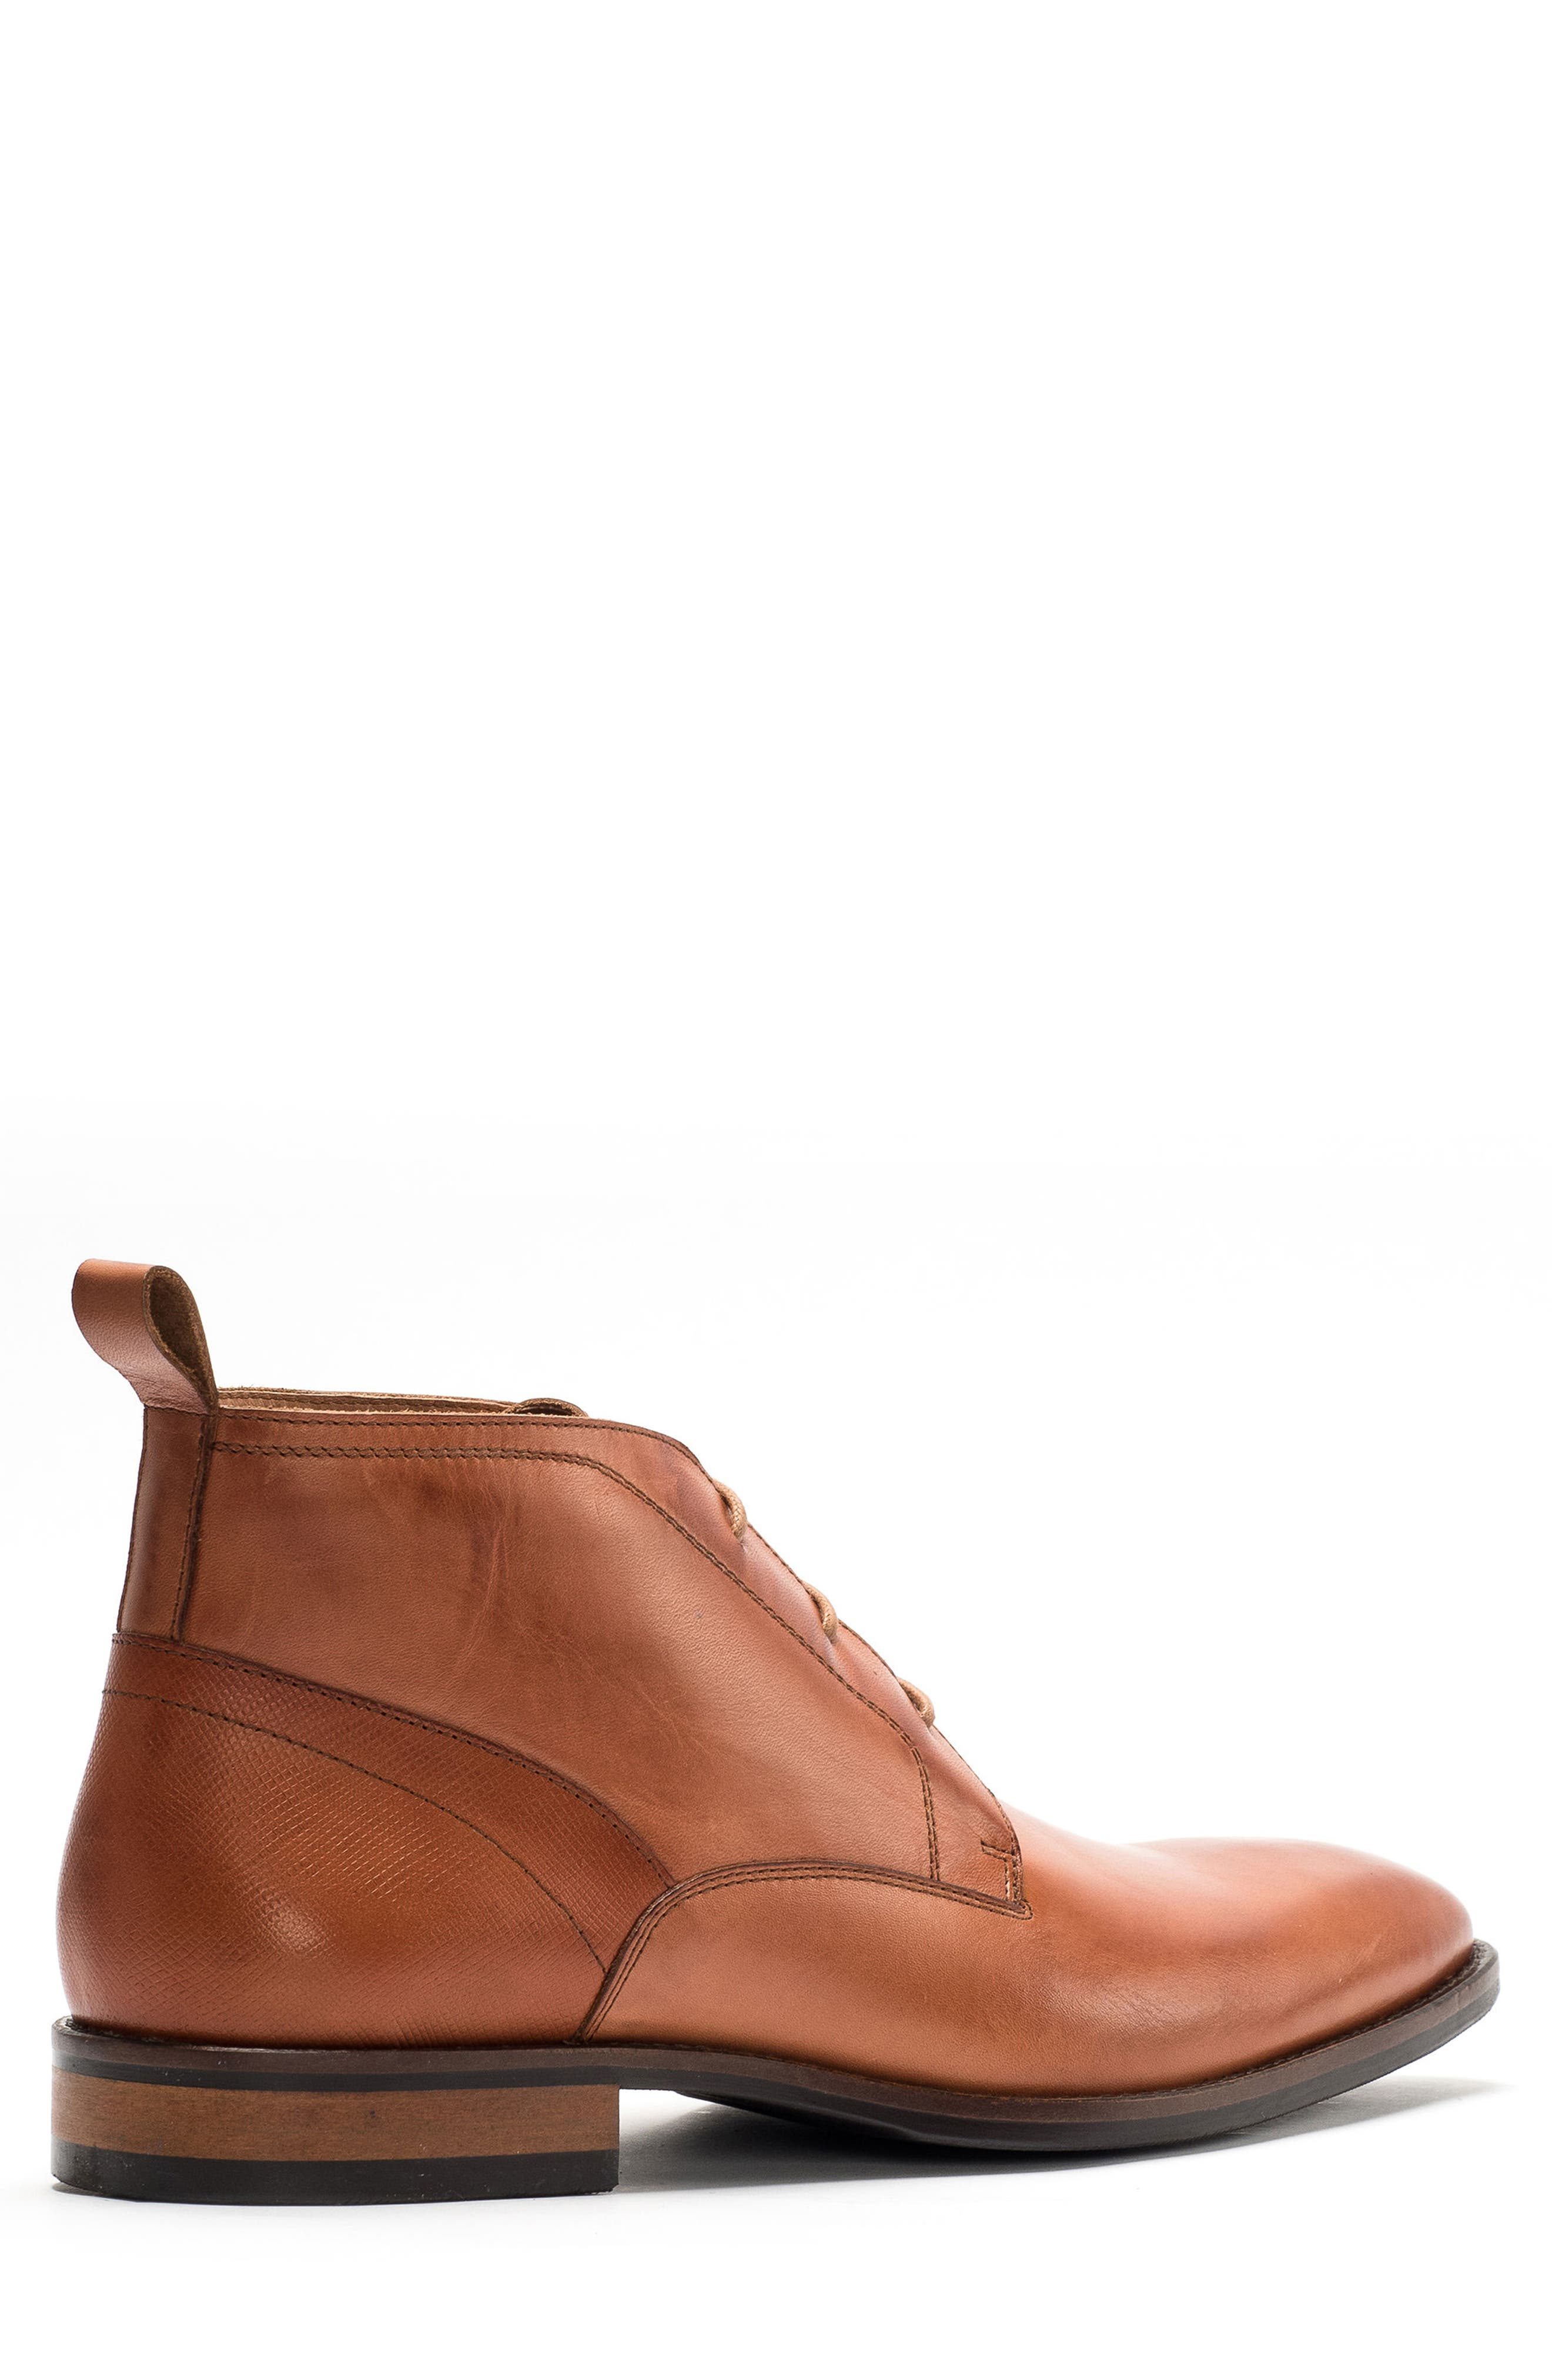 Wellington St. Chukka Boot,                             Alternate thumbnail 2, color,                             TAN